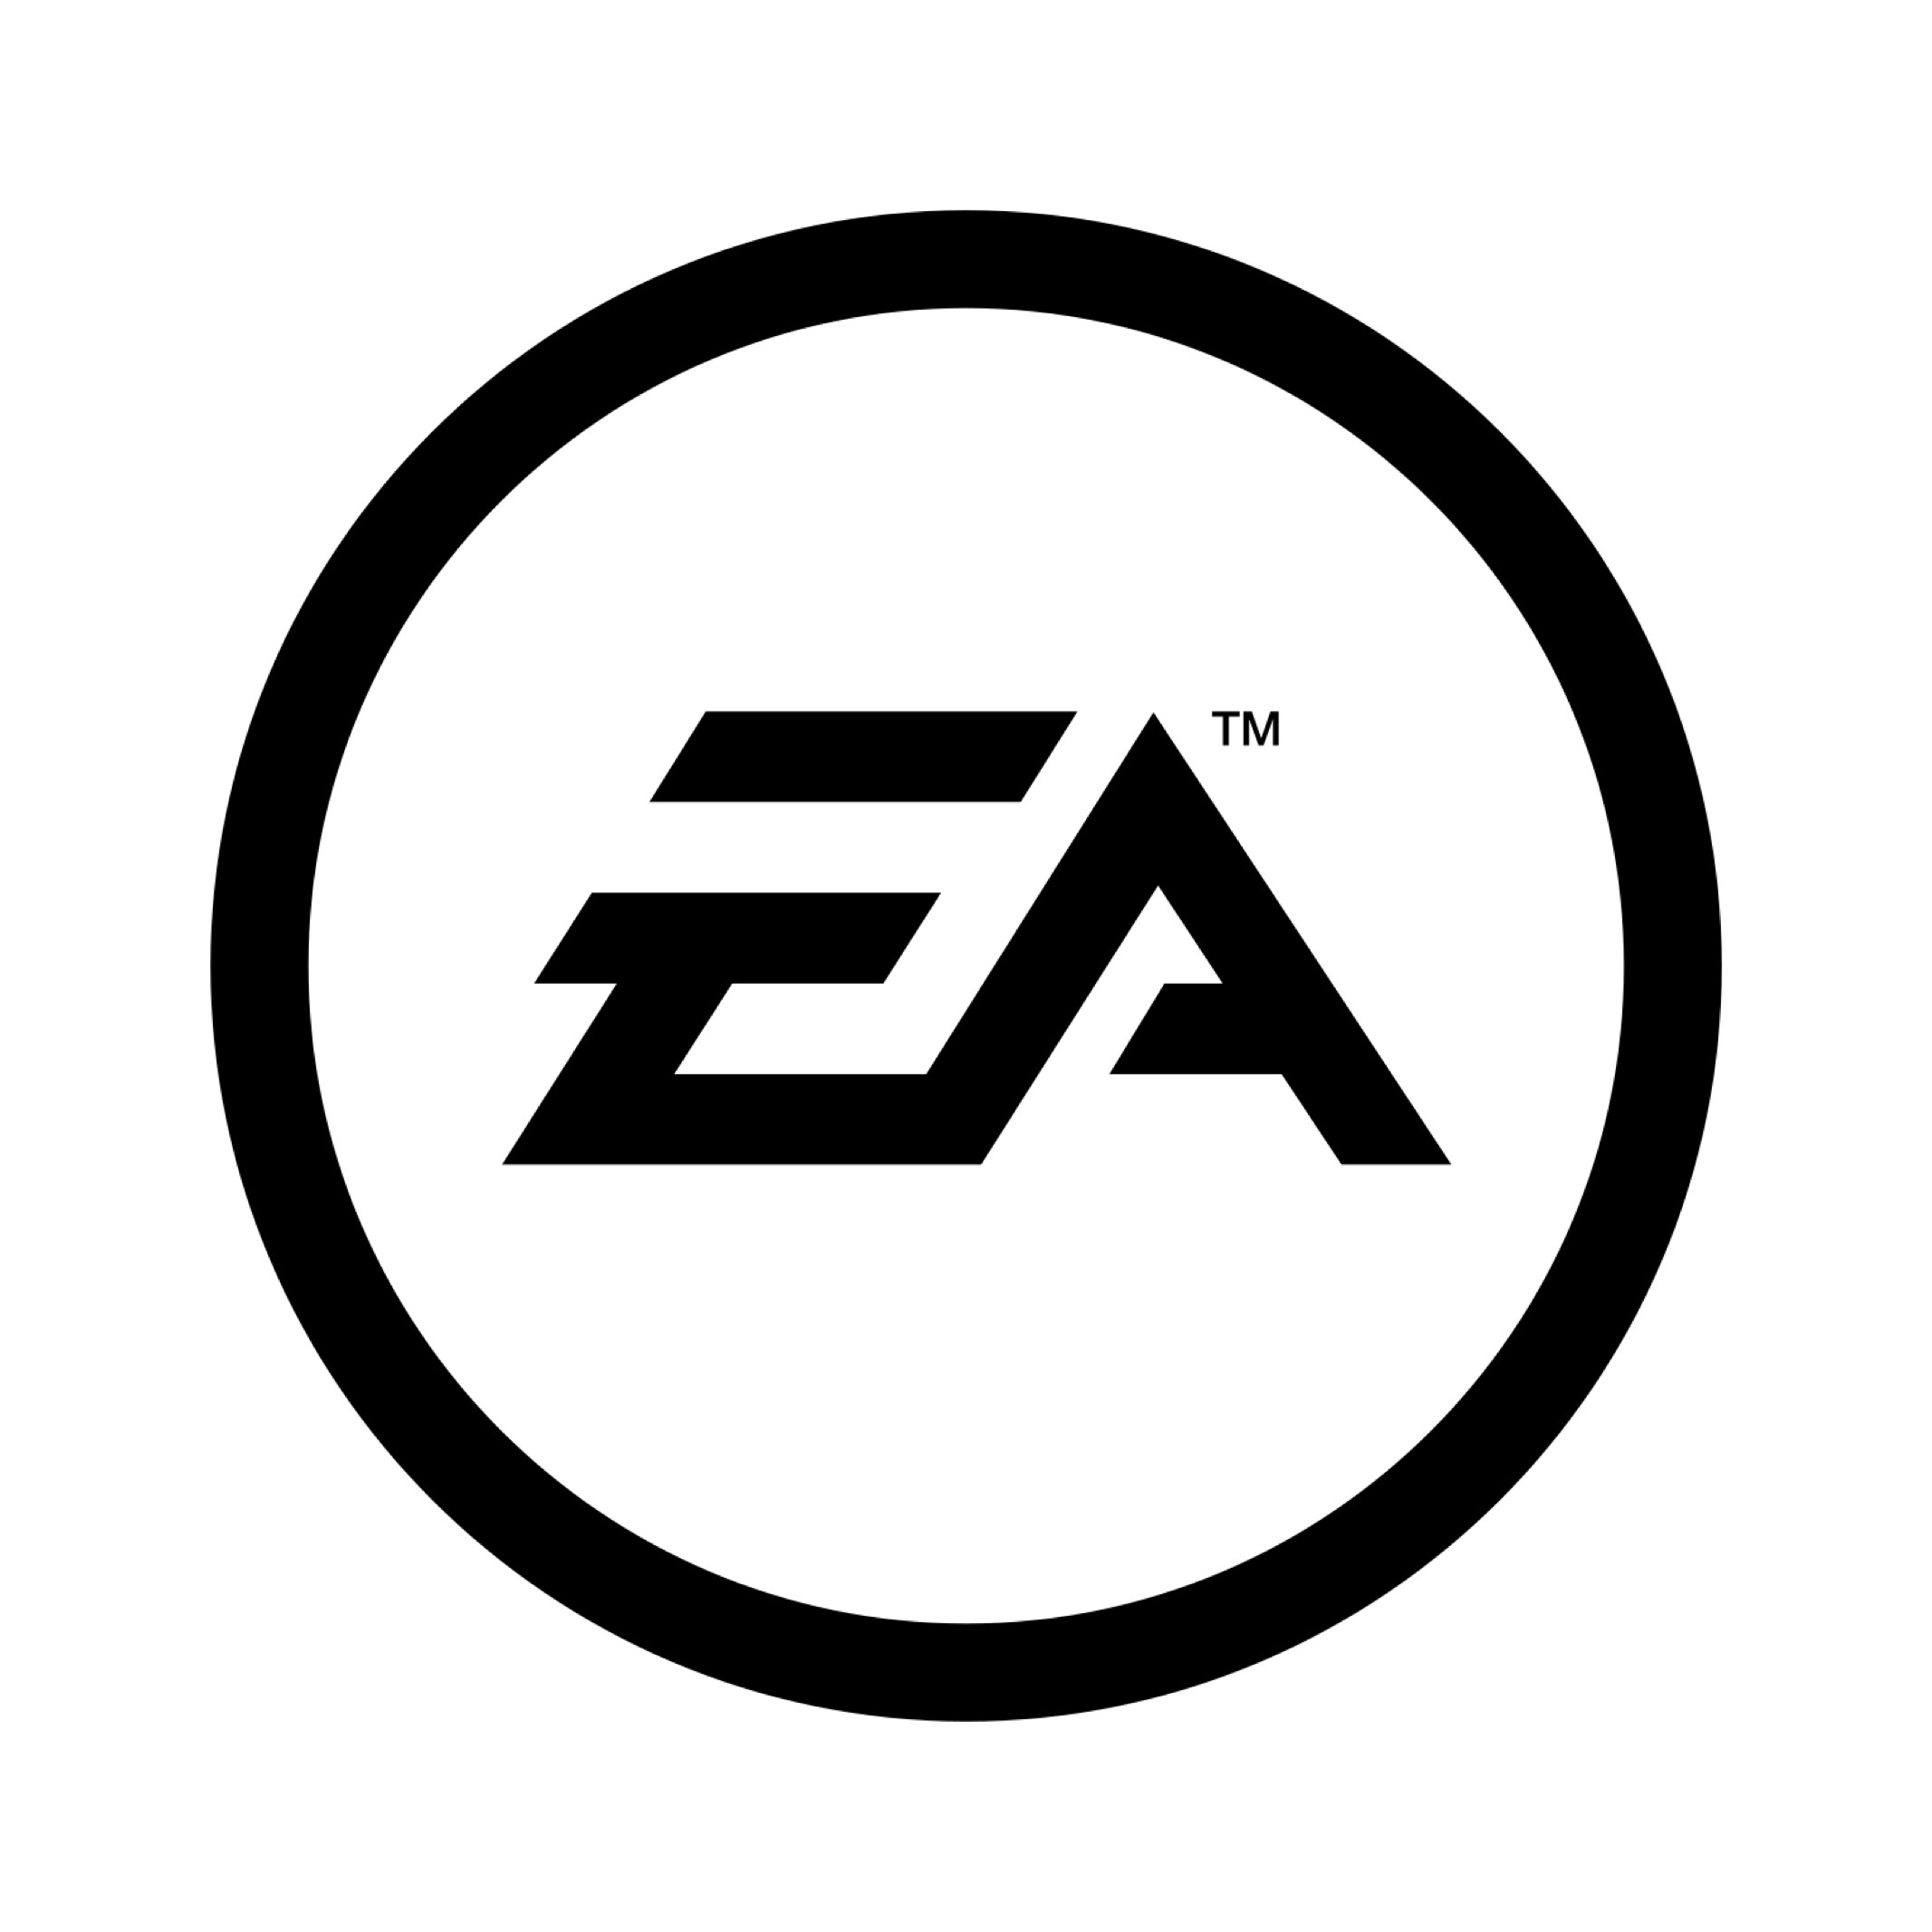 The speaker works for Electronic Arts (EA)